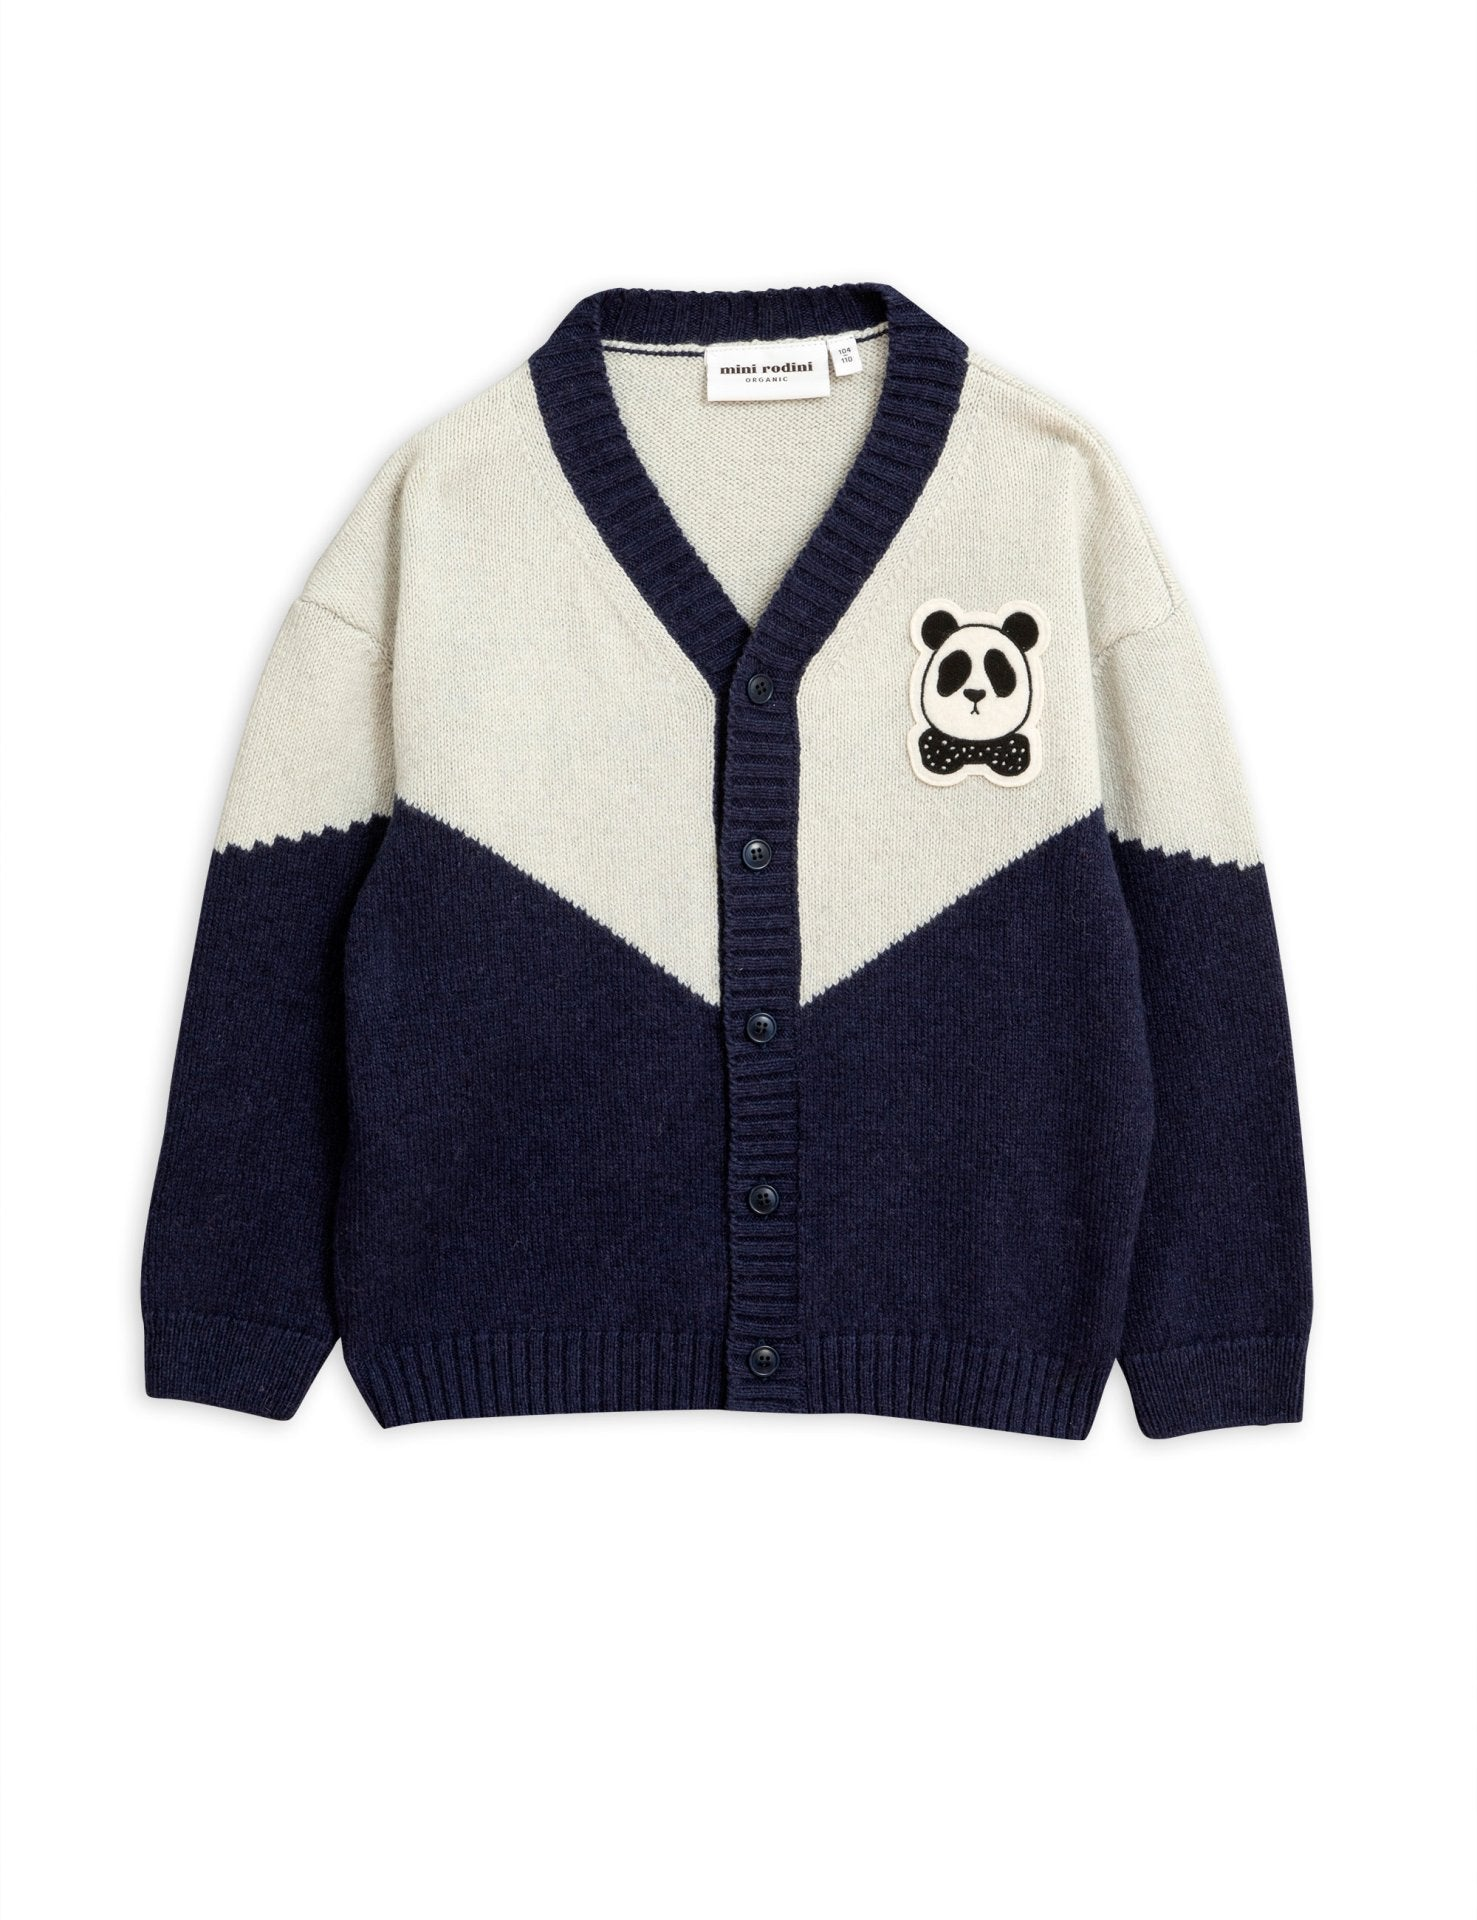 Mini Rodini Panda Knitted Wool Cardigan